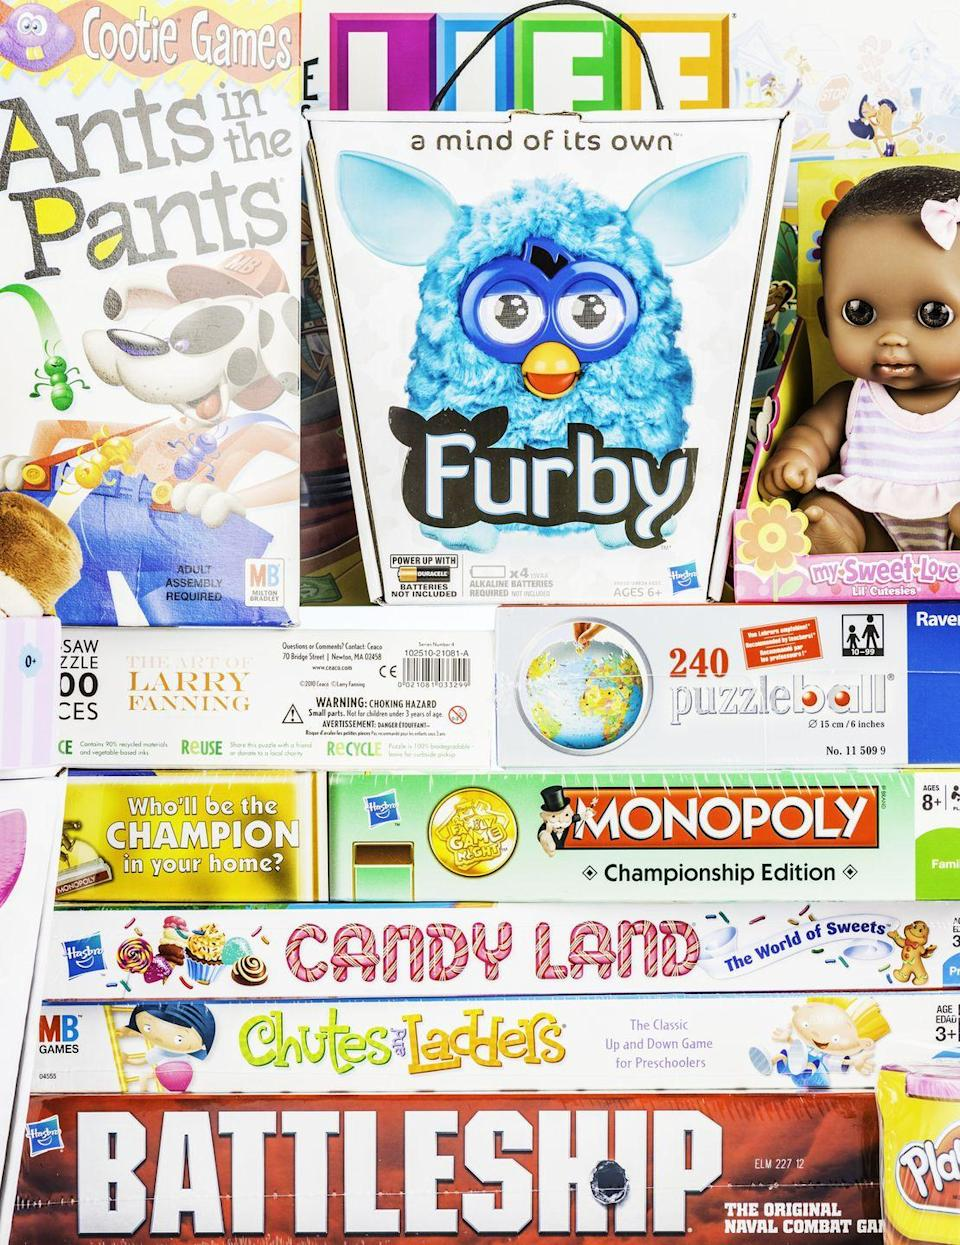 """<p>Add a charitable element to a holiday that often feels totally commercialized by """"adopting"""" a child through a local non-profit organization, like <a href=""""https://www.toysfortots.org/"""" rel=""""nofollow noopener"""" target=""""_blank"""" data-ylk=""""slk:Toys for Tots"""" class=""""link rapid-noclick-resp"""">Toys for Tots</a>. In most cases, the service will provide a small wish list to guide your shopping. Then, you simply wrap the gift and drop it off at a pre-determined location.</p>"""